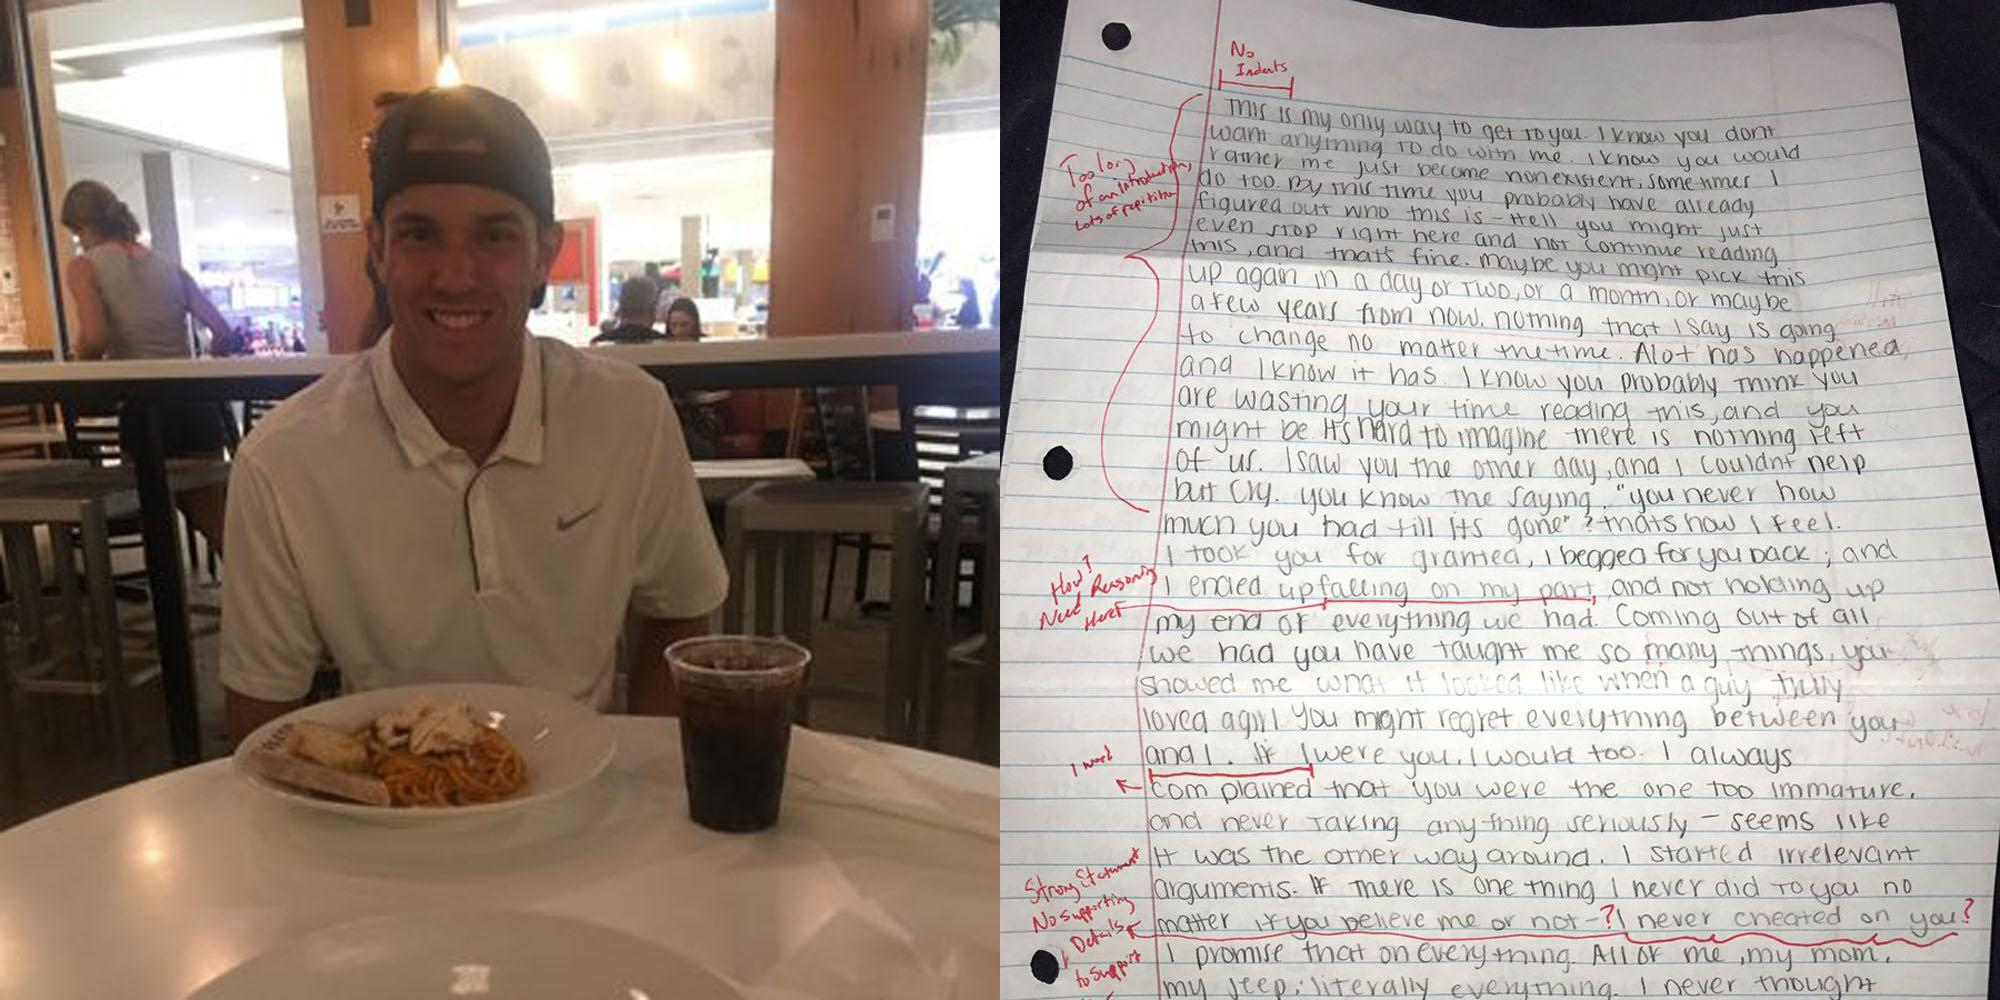 Admirable people essay about letter